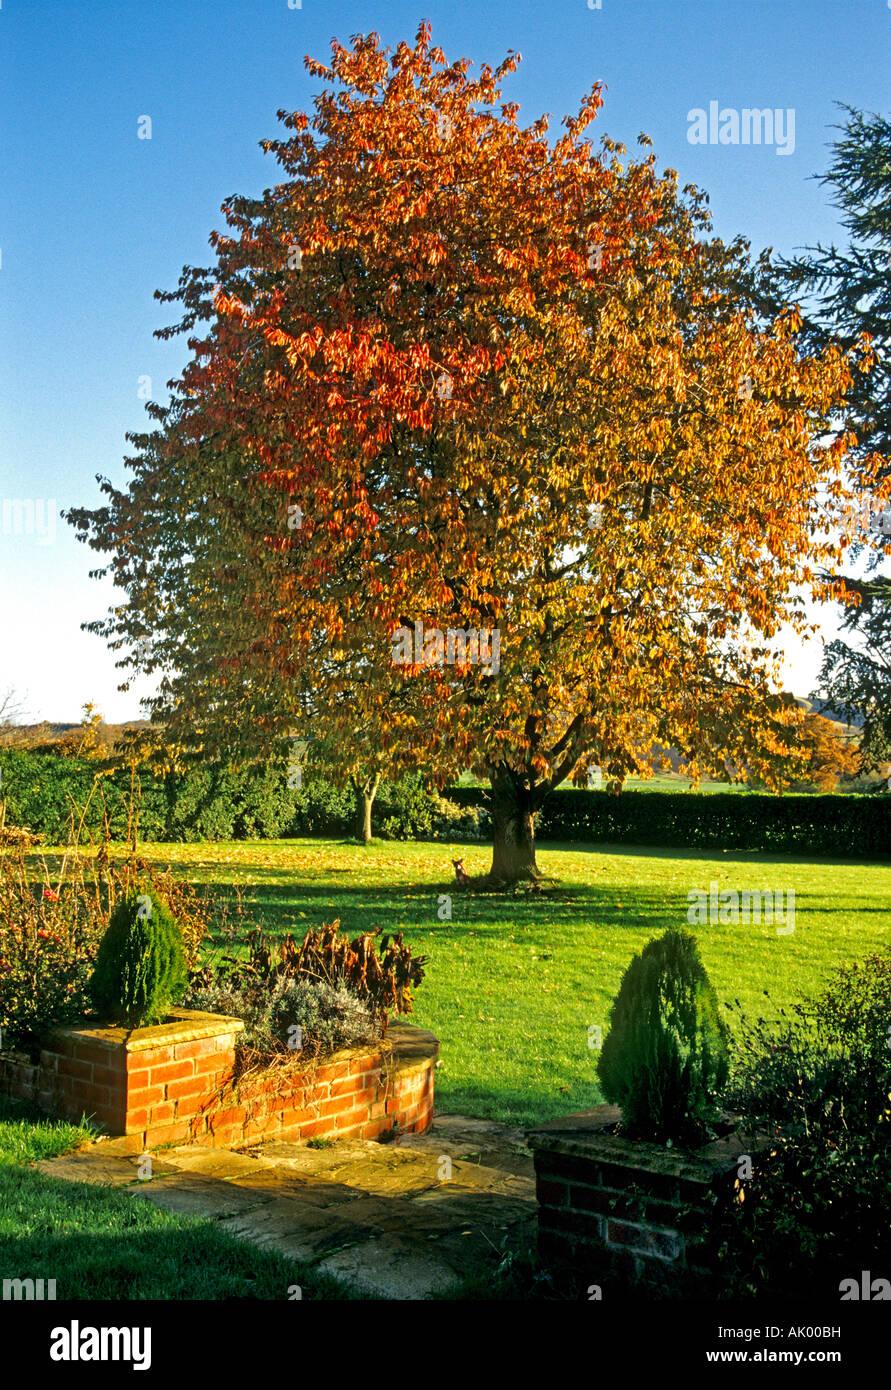 Autumn in country garden with prunus avium and steps leading to main lawn in Wiltshire England UK EU - Stock Image